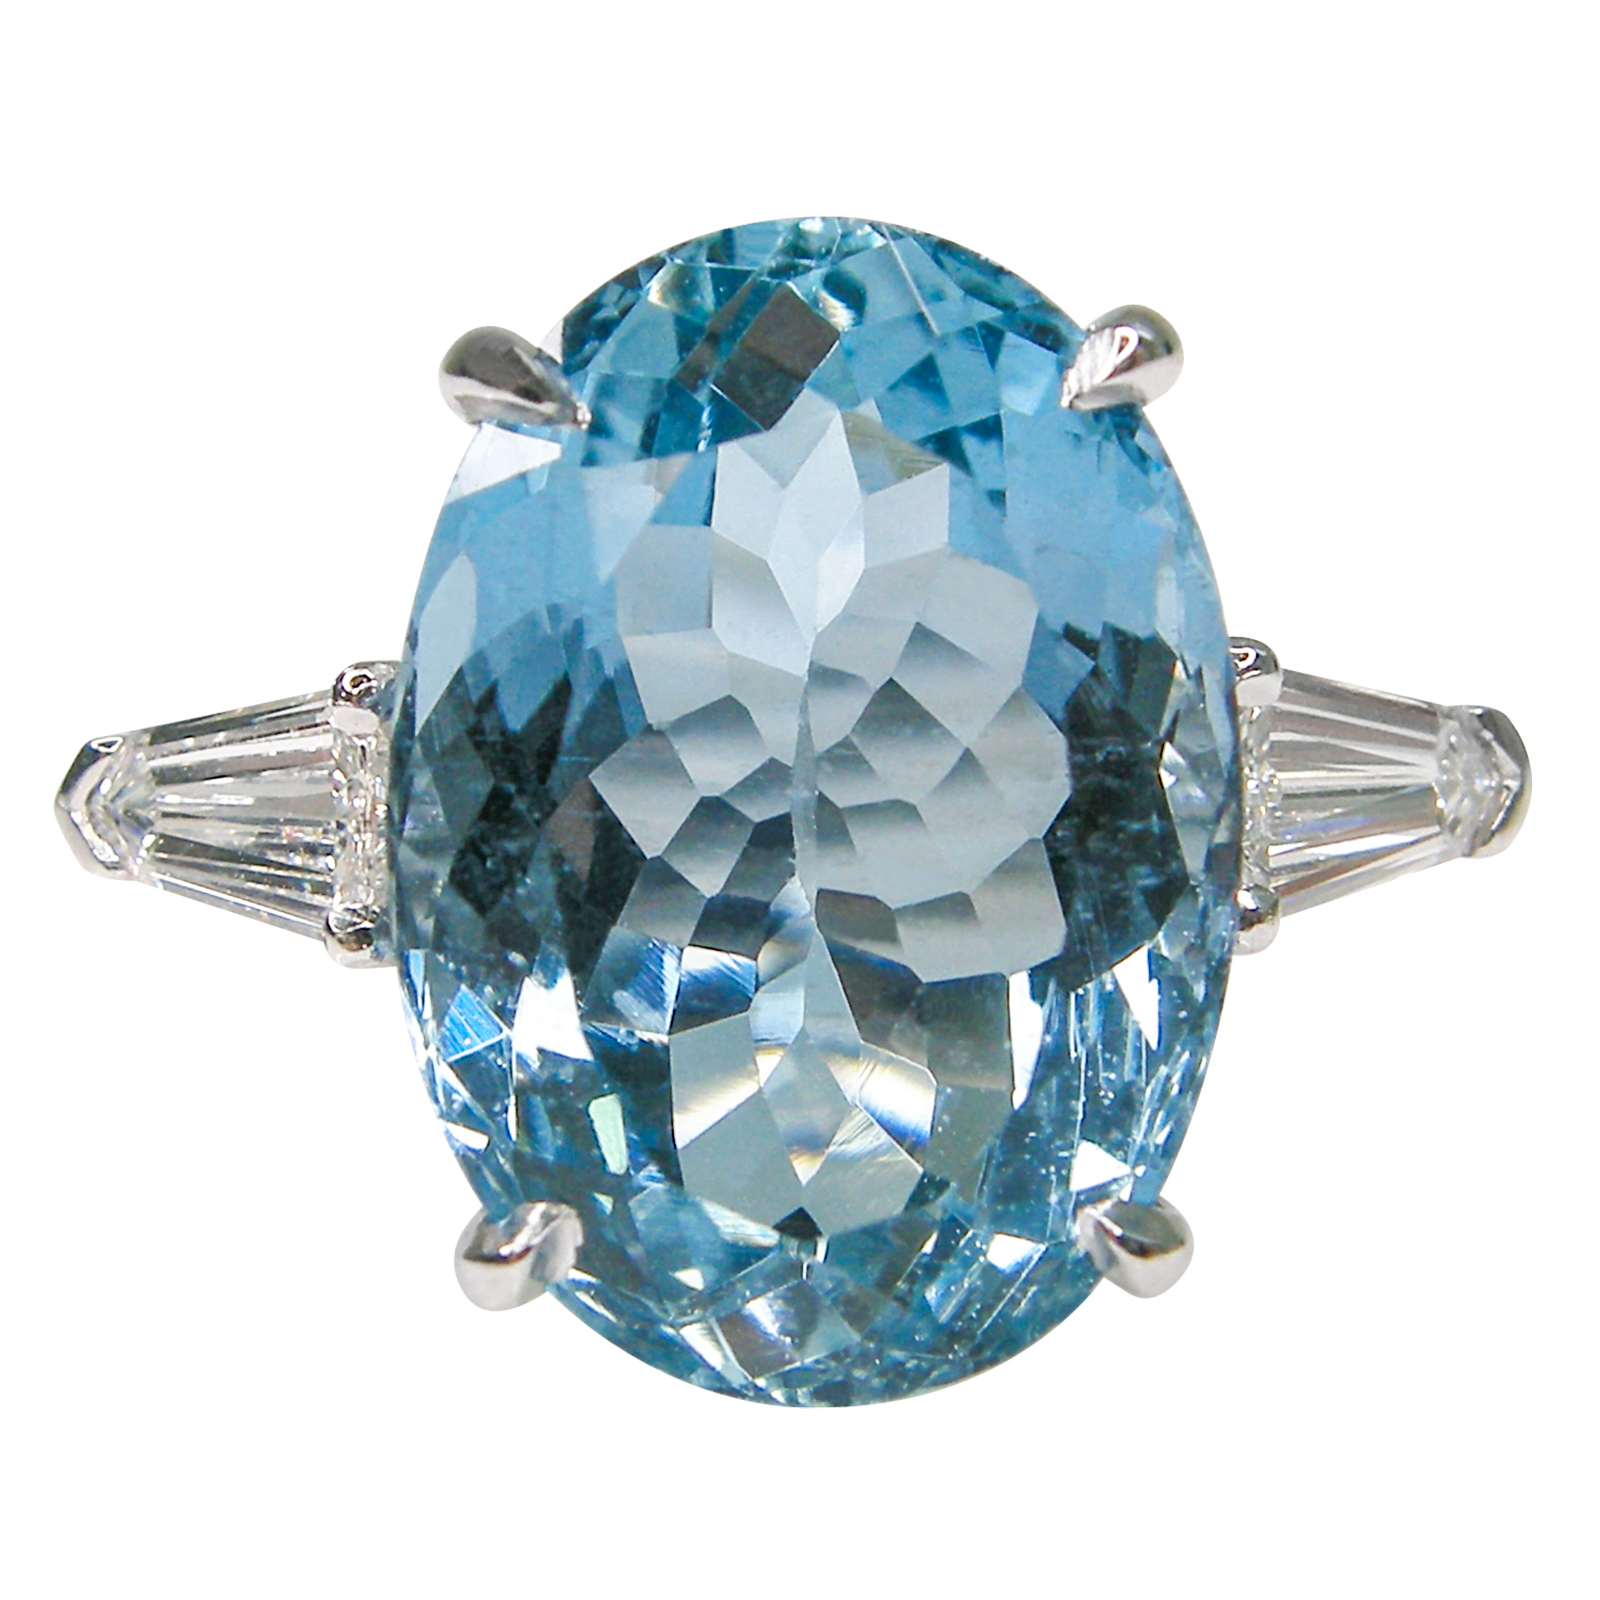 AQUAMARINE THREE STONE RING BESPOKE FINE JEWELLERY BY SHAHINA HATTA HONG KONG